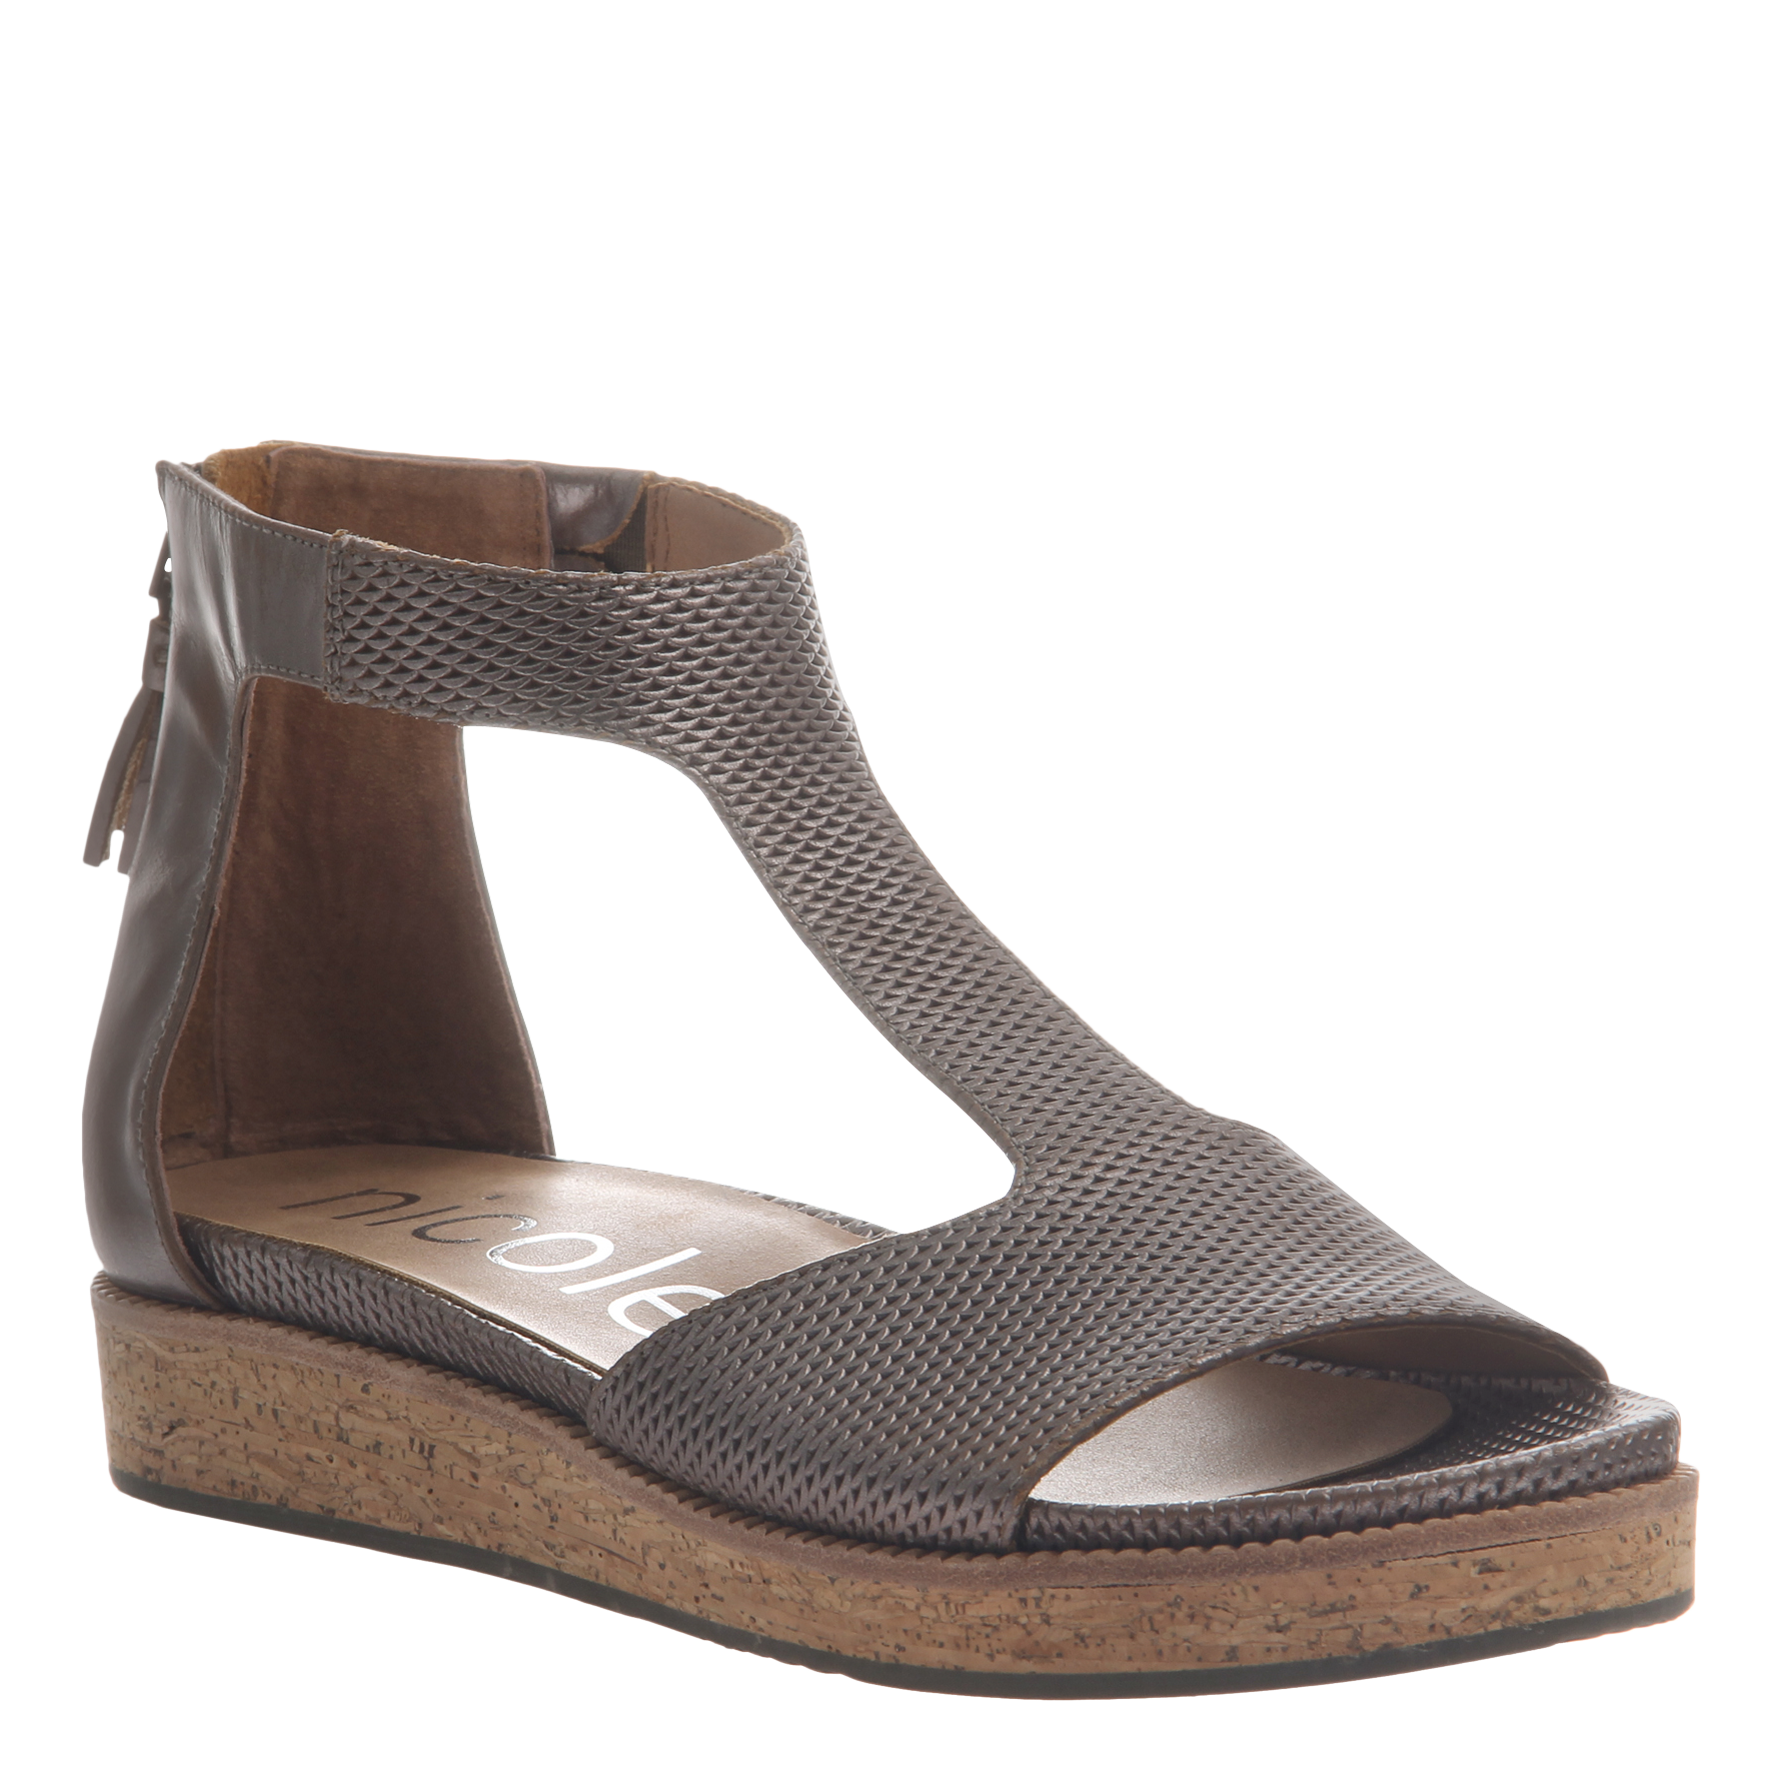 Nicole womens flat sandal lilou in pewter